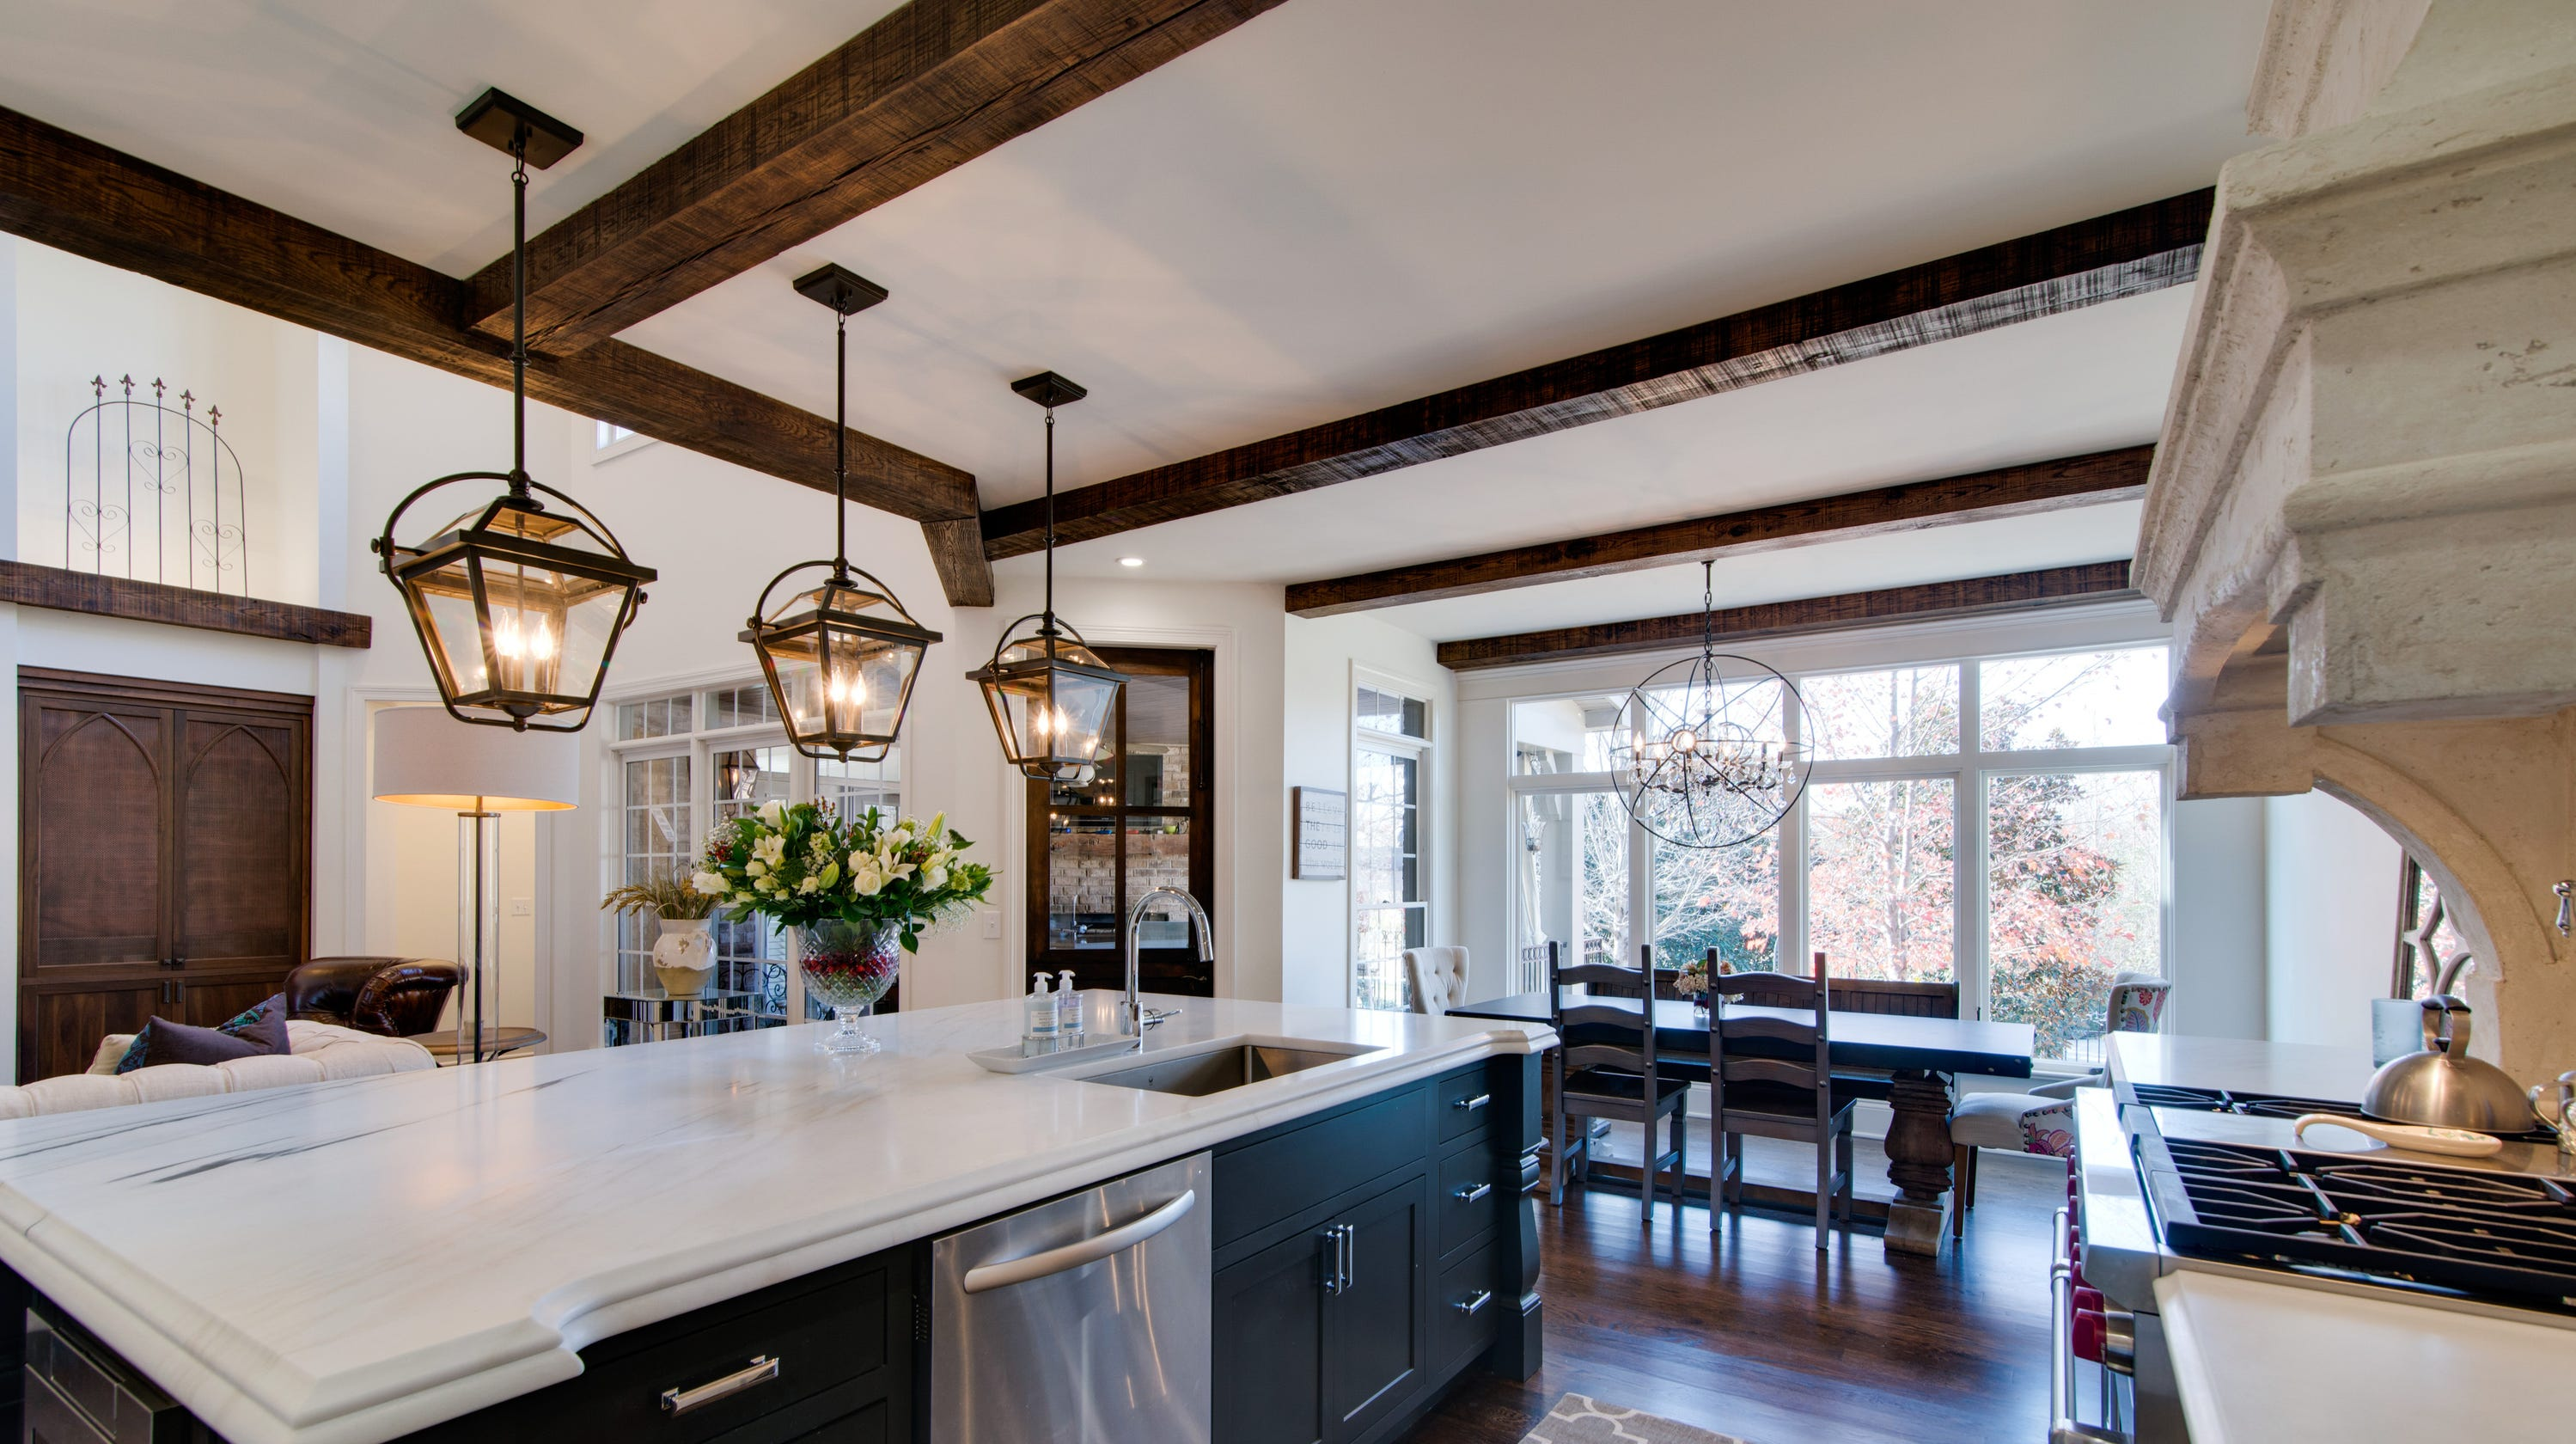 Franklin Realtor Shares Tips On Making Home Upgrades That Add Value At Re